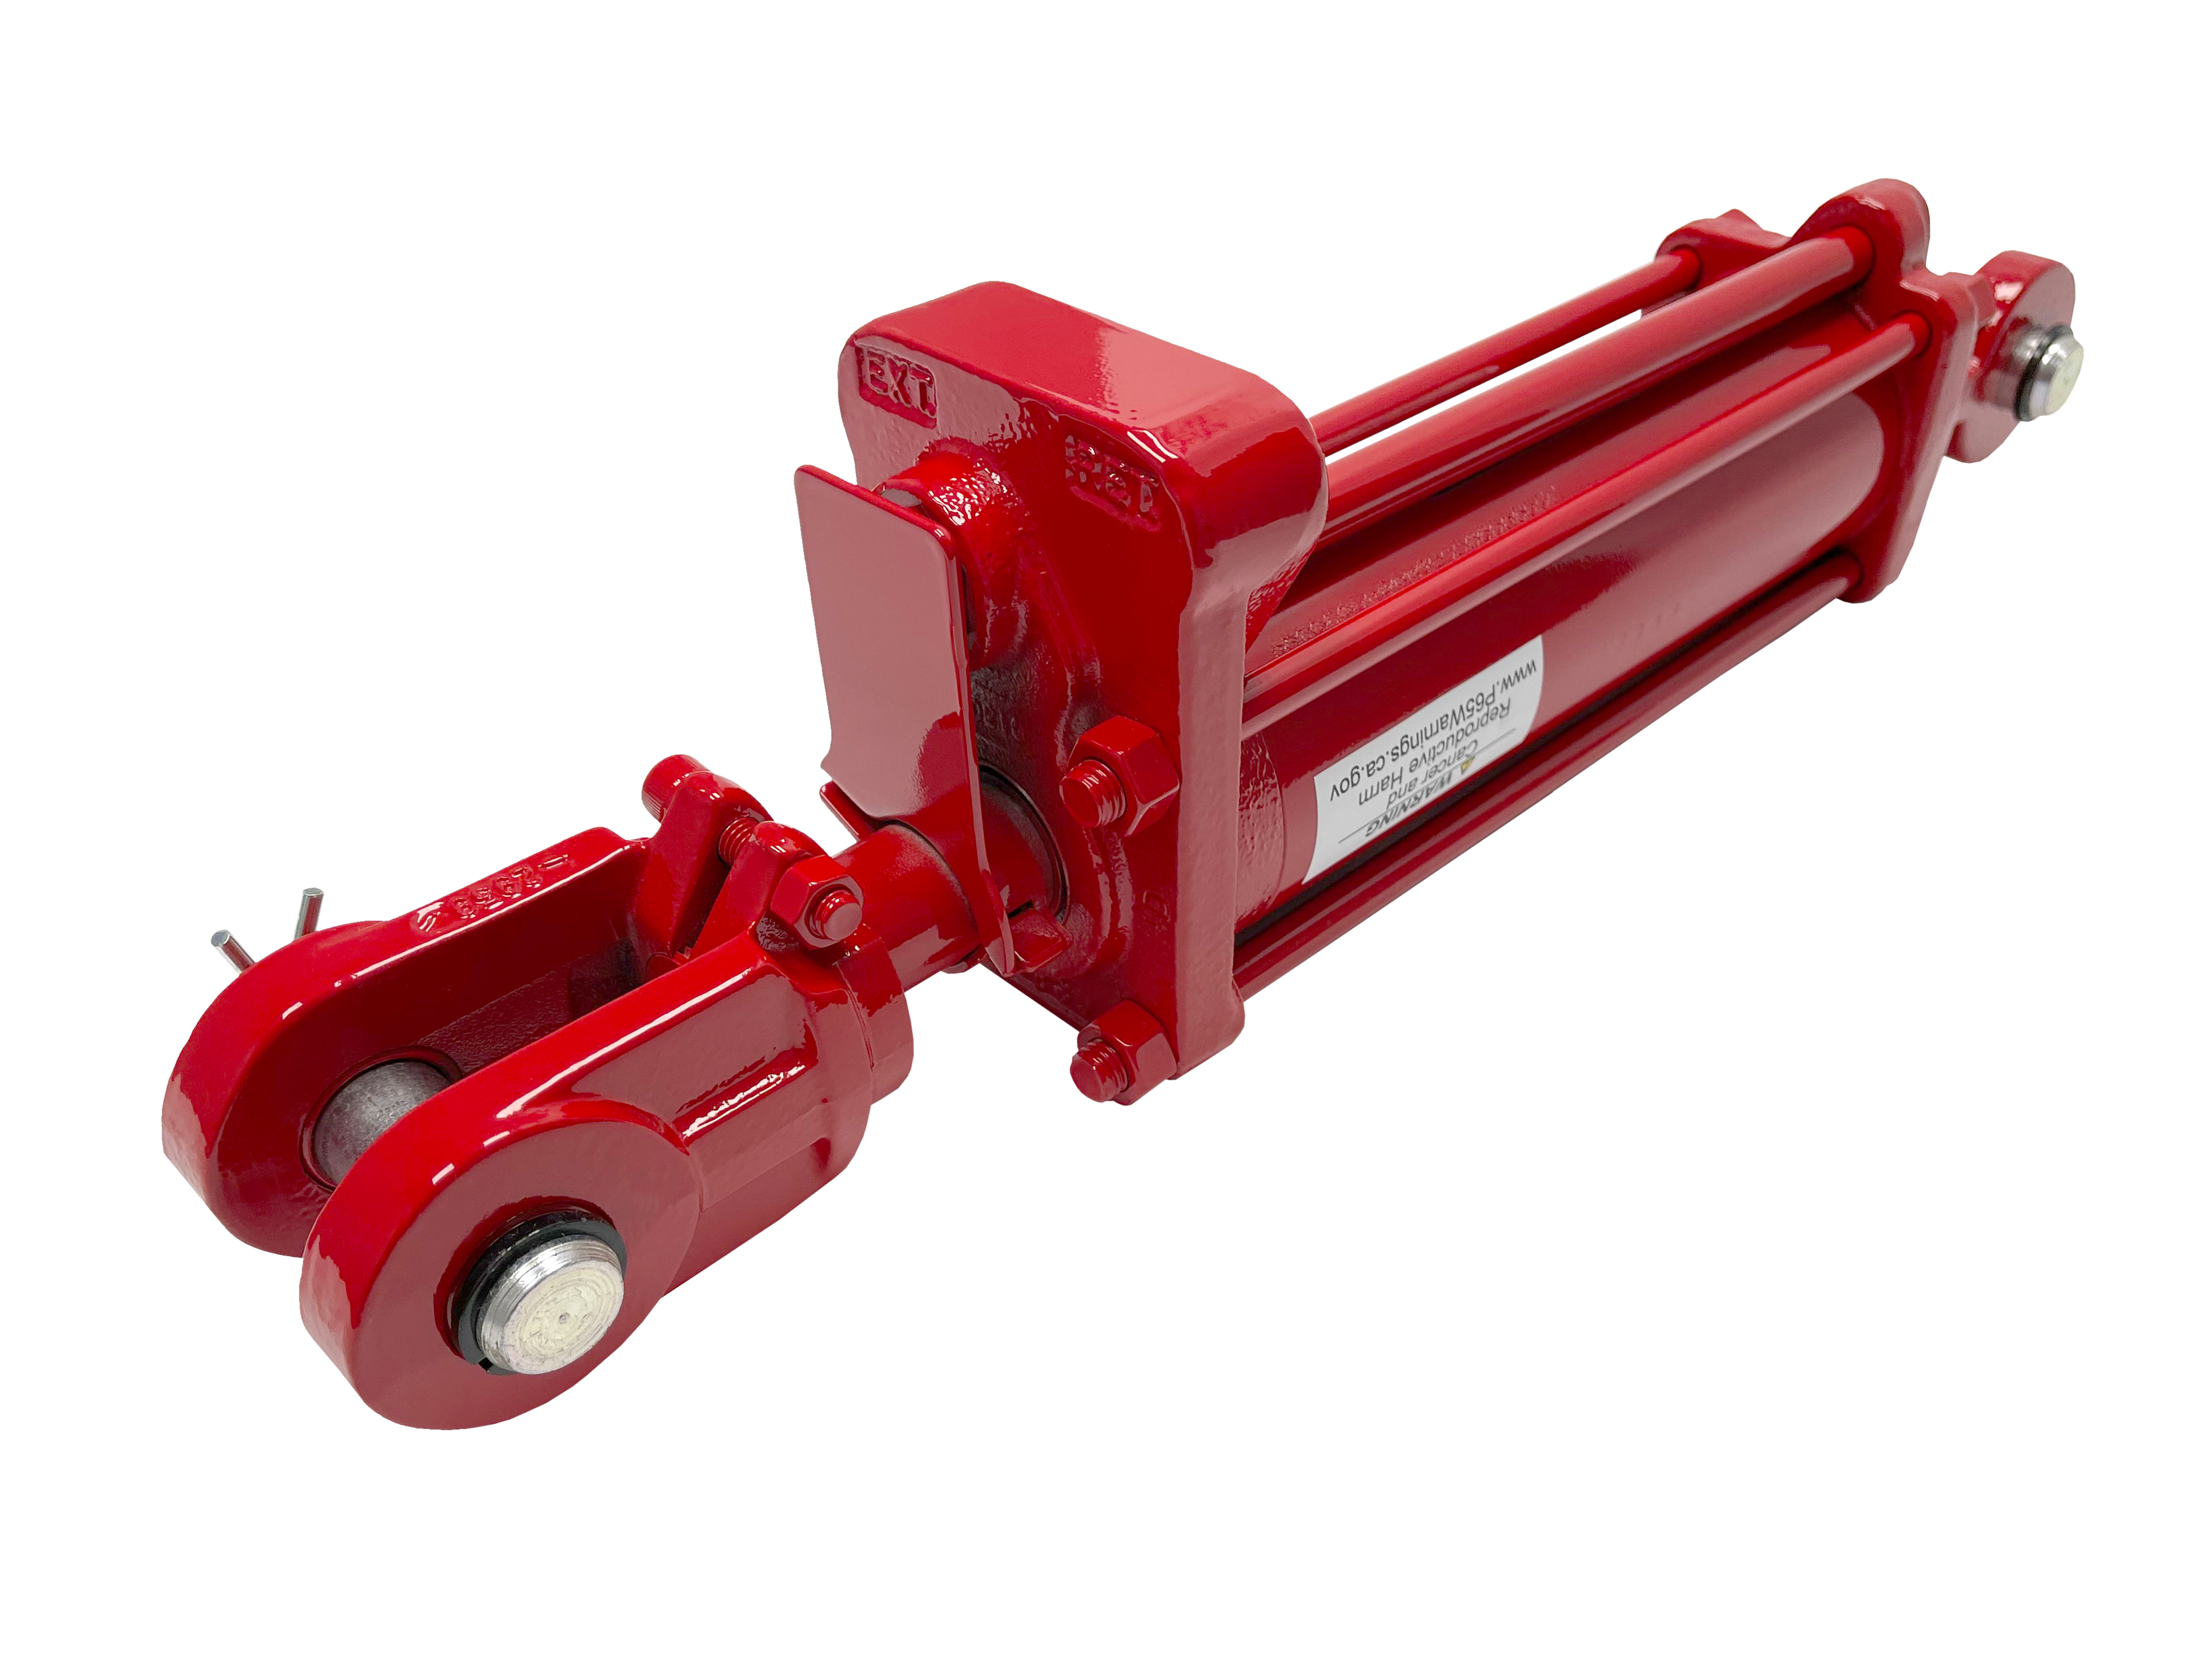 4 bore x 16 stroke CROSS hydraulic cylinder with depth control, tie rod double acting cylinder DC series | CROSS MANUFACTURING